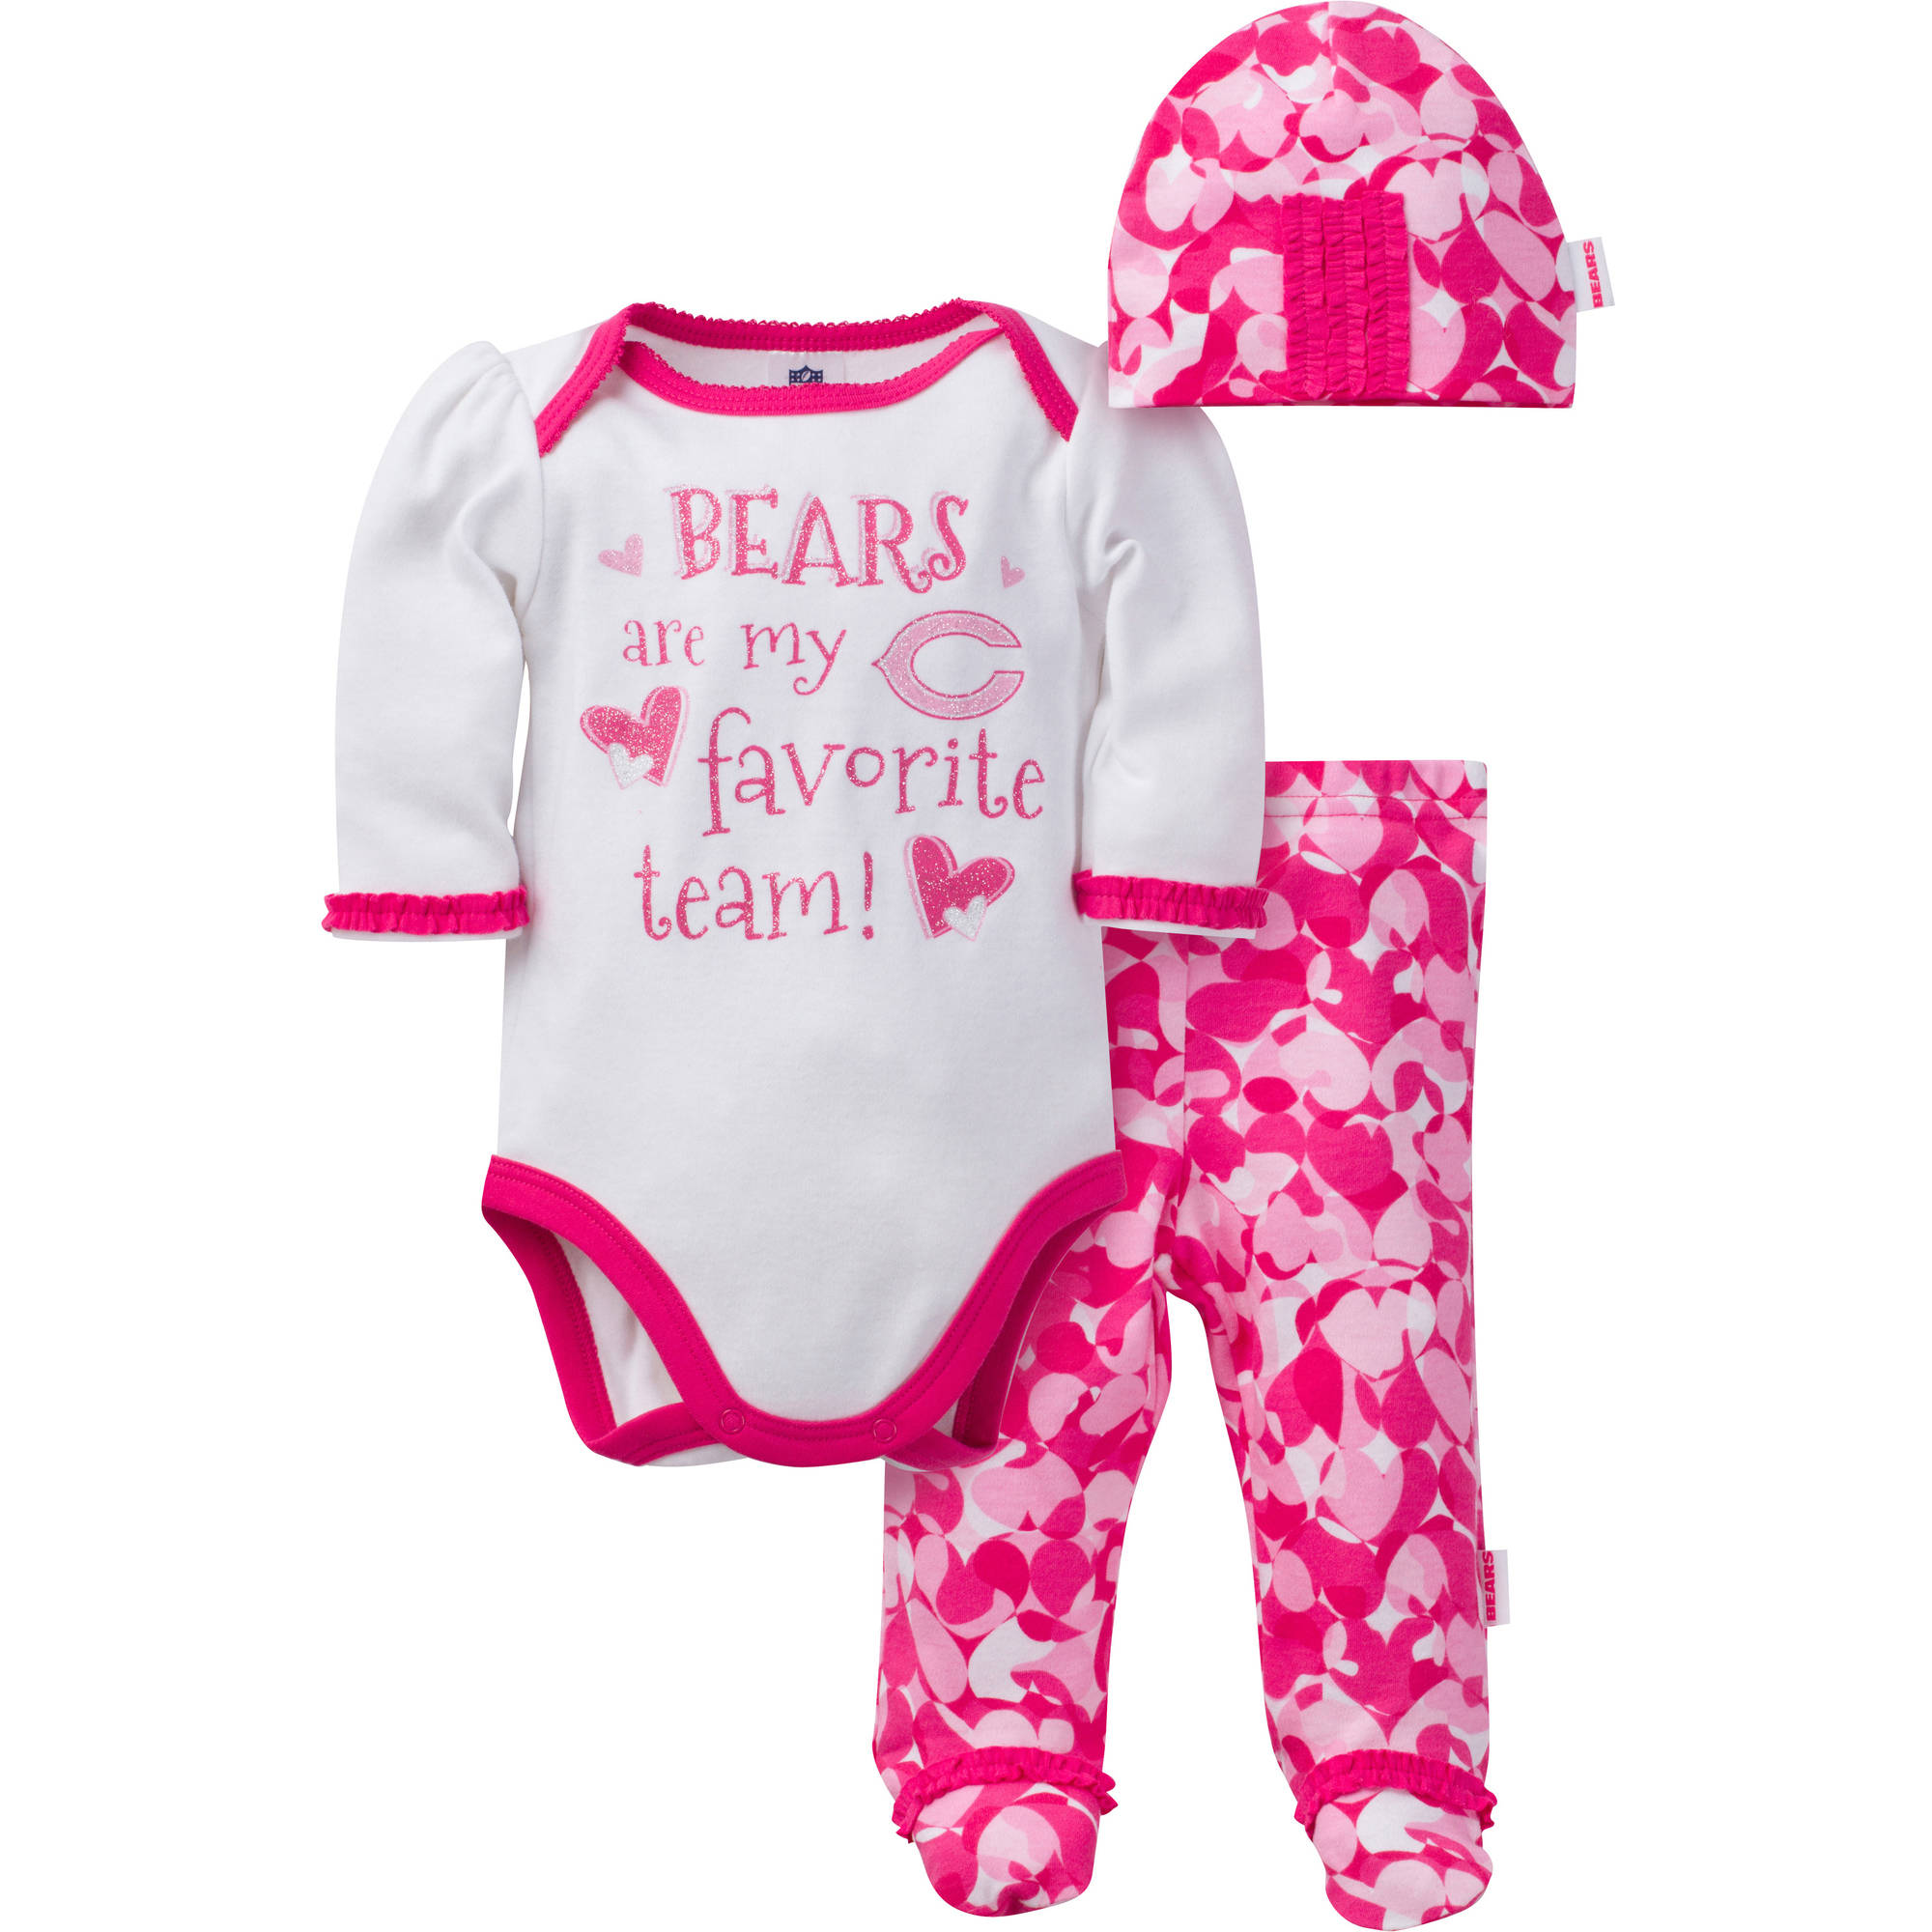 NFL Chicago Bears Baby Girls Bodysuit, Pant and Cap Outfit Set, 3-Piece